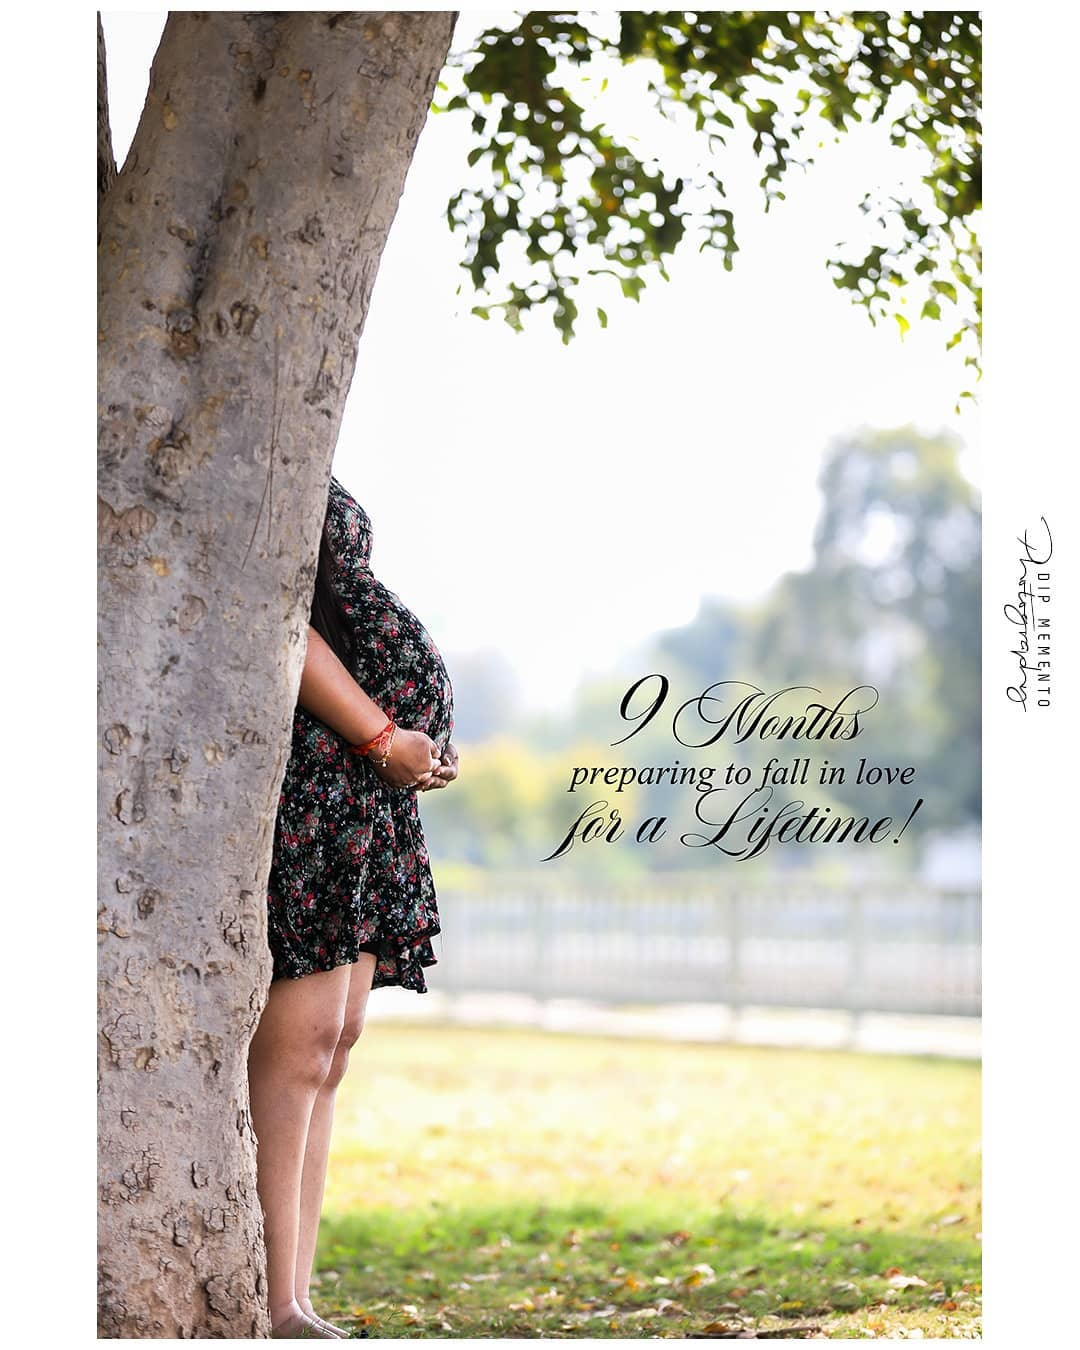 Dip Memento Photography,  maternityphotographer, maternityphotography, maternity, mommytobe, momtobe, newmommy, pregnant, pregnancy, expectingmother, 9924227745, maternityportraits, maternitypictures, motherhood, maternityshoot, babybump, daddytobe, dadtobe, babyiscomingsoon, thebump, maternityshoot, maternityphotographyahmedabad, dipmementophotography, ahmedabadphotographer, mothertobe, expectingbaby, BABYBUMP, maternityposes, maternityposing